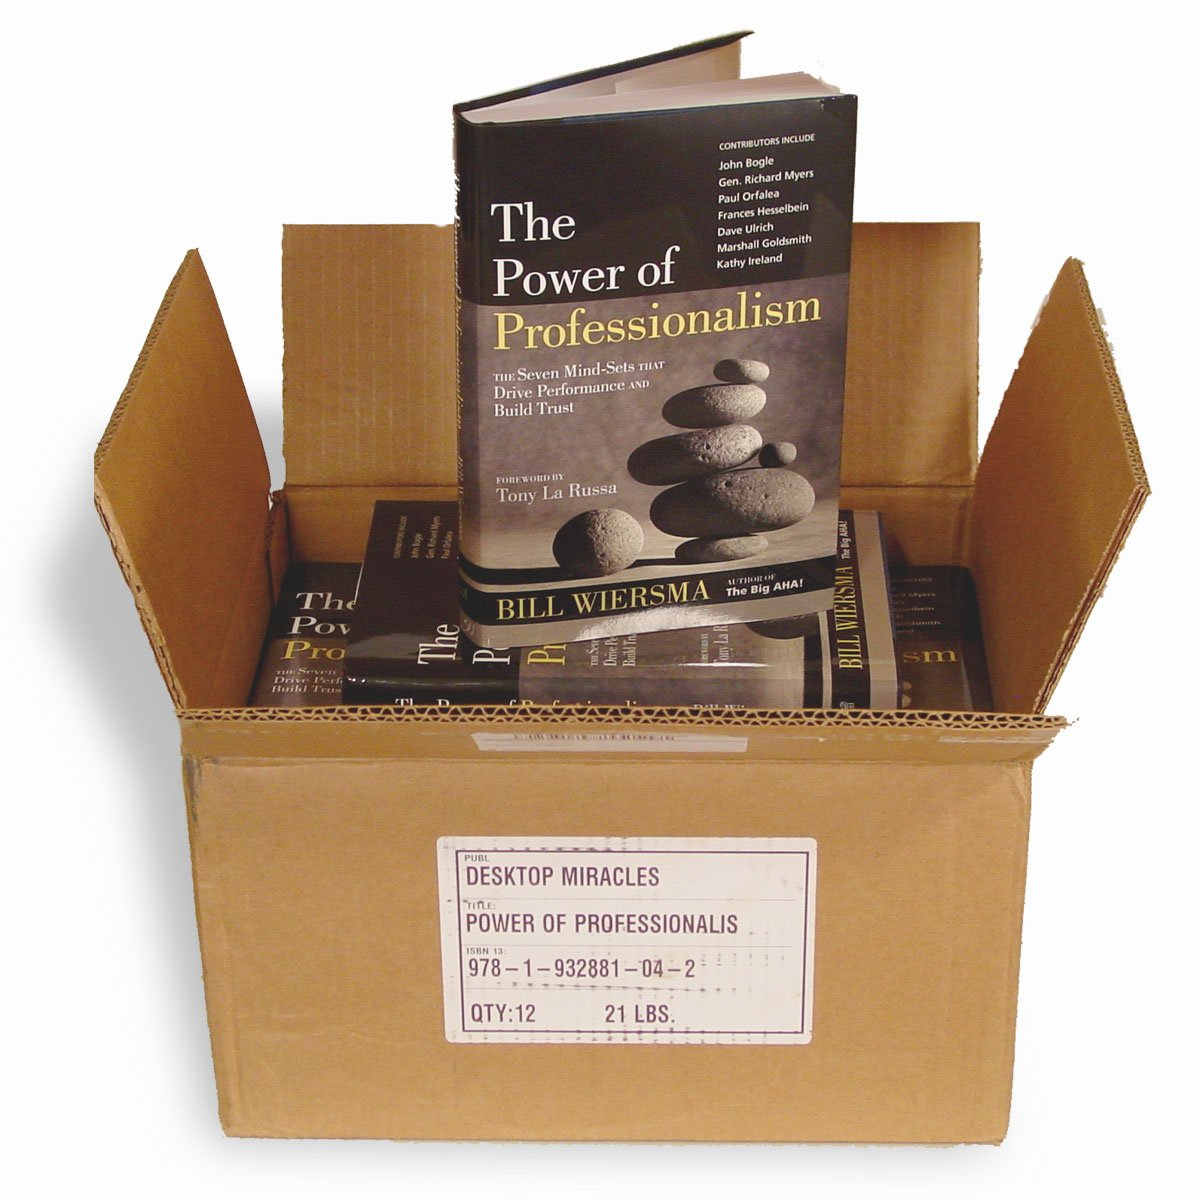 Read Online The Power of Professionalism: The Seven Mind-Sets that Drive Performance and Build Trust--12 PACK OFFER PDF